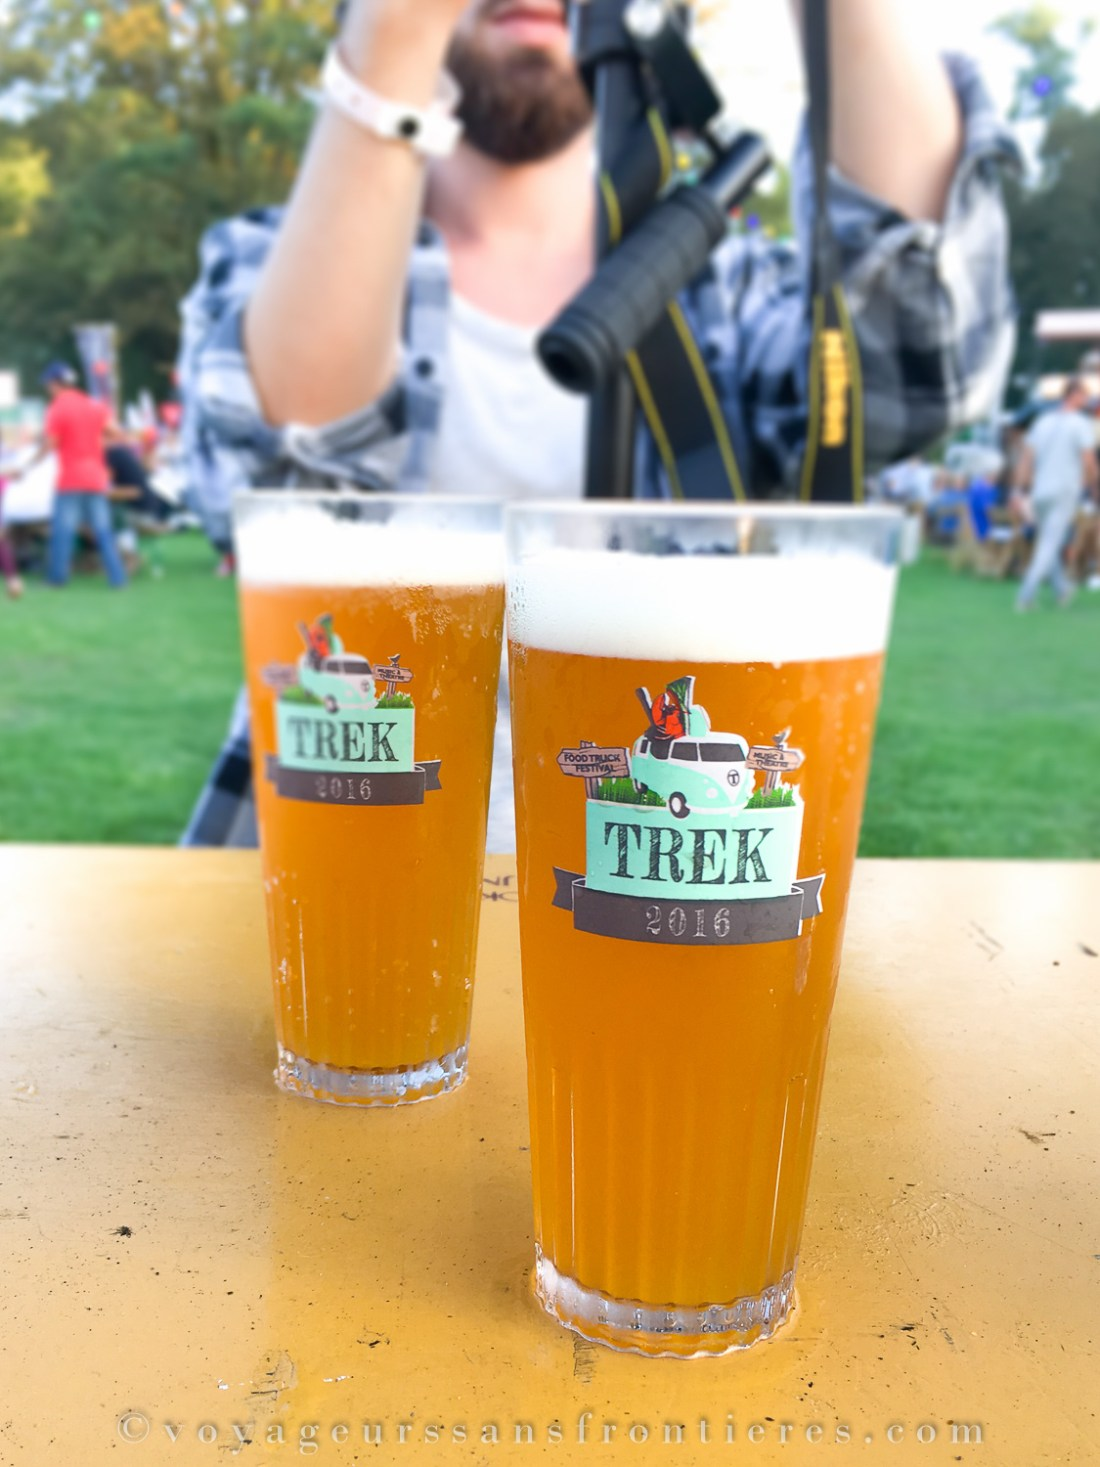 Two glasses of beer at the TREK Festival - The Hague, Netherlands